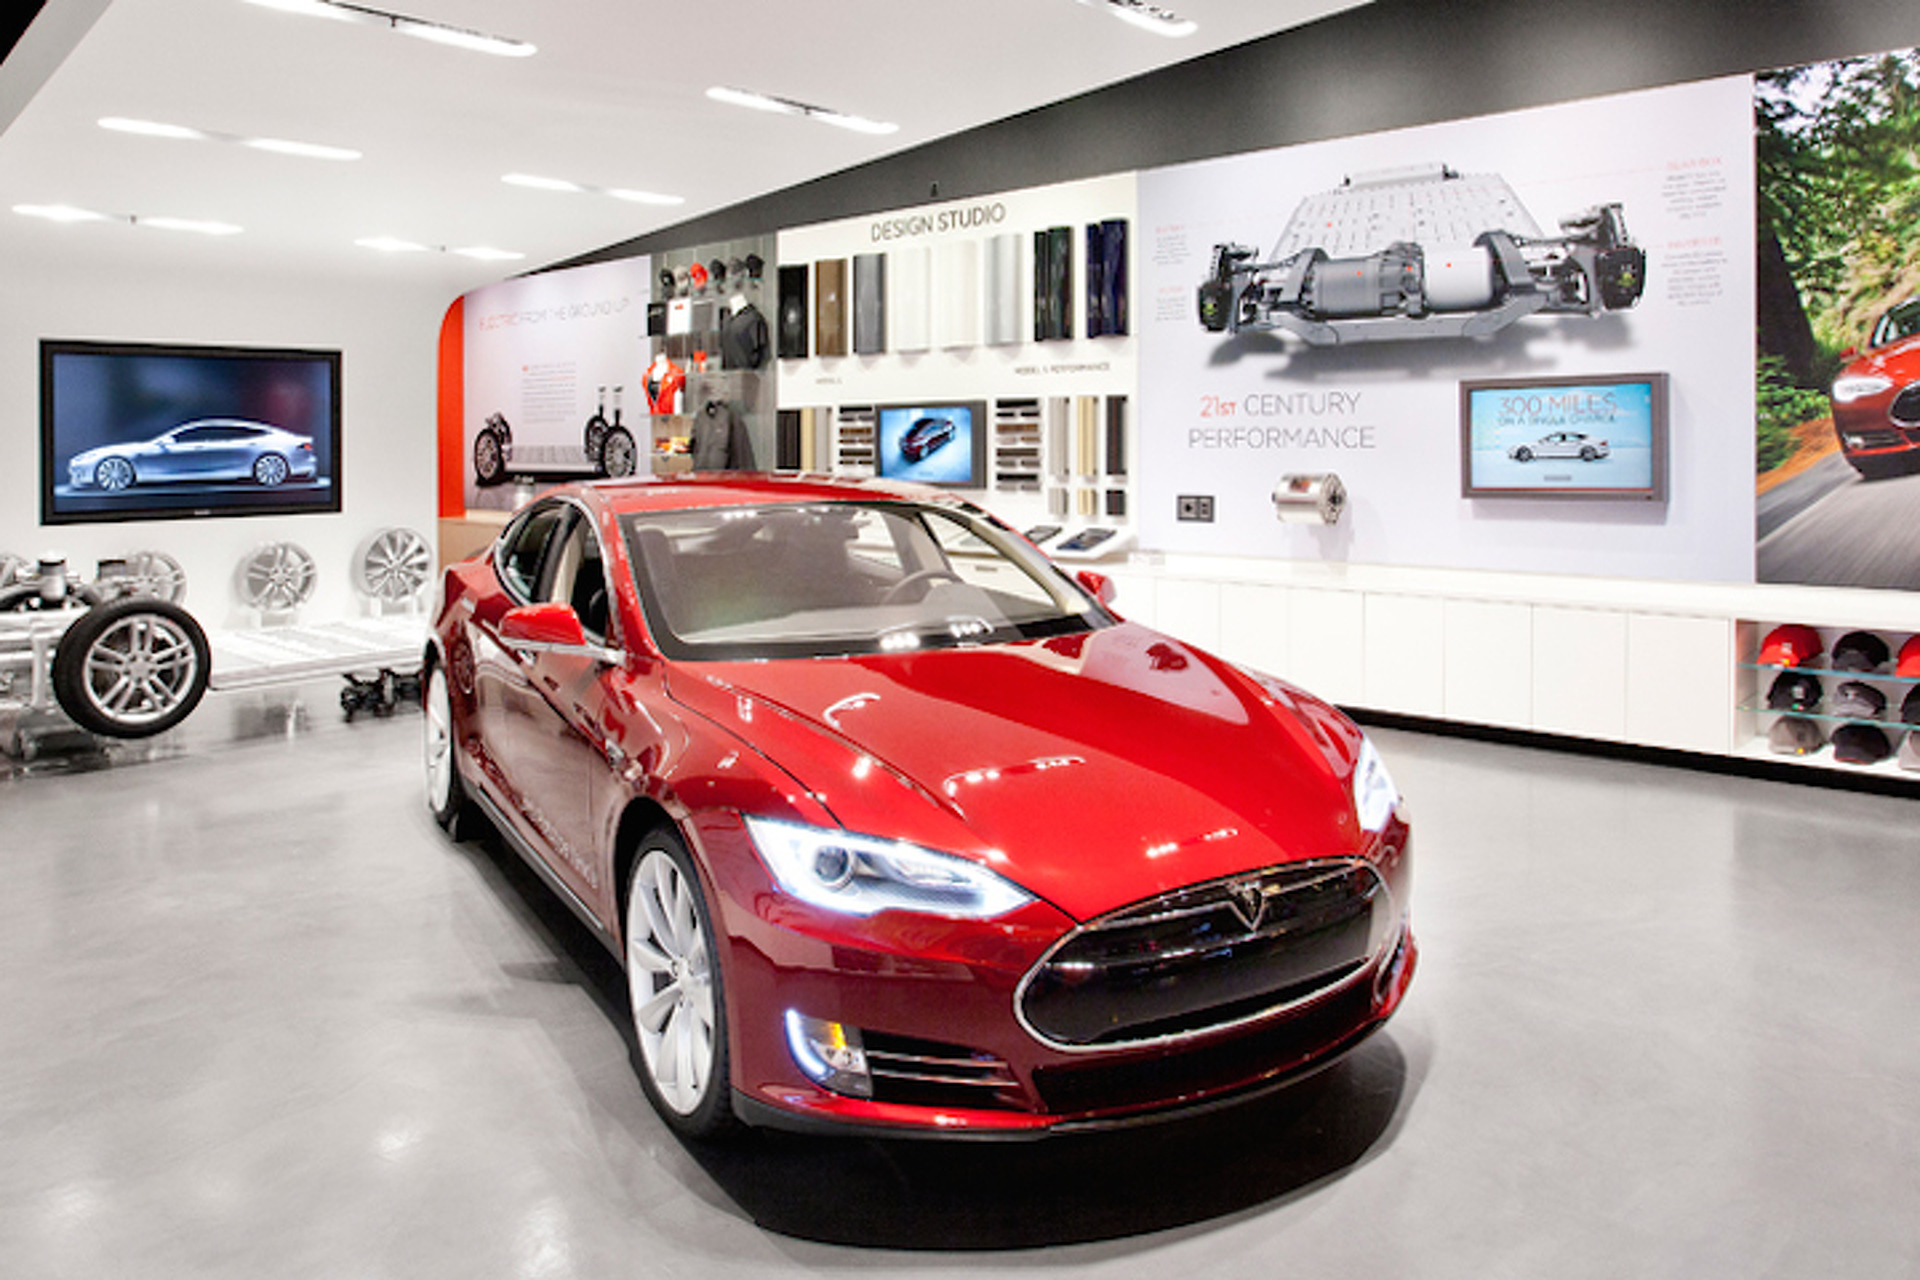 Georgia Latest State To Take Aim at Tesla Showrooms